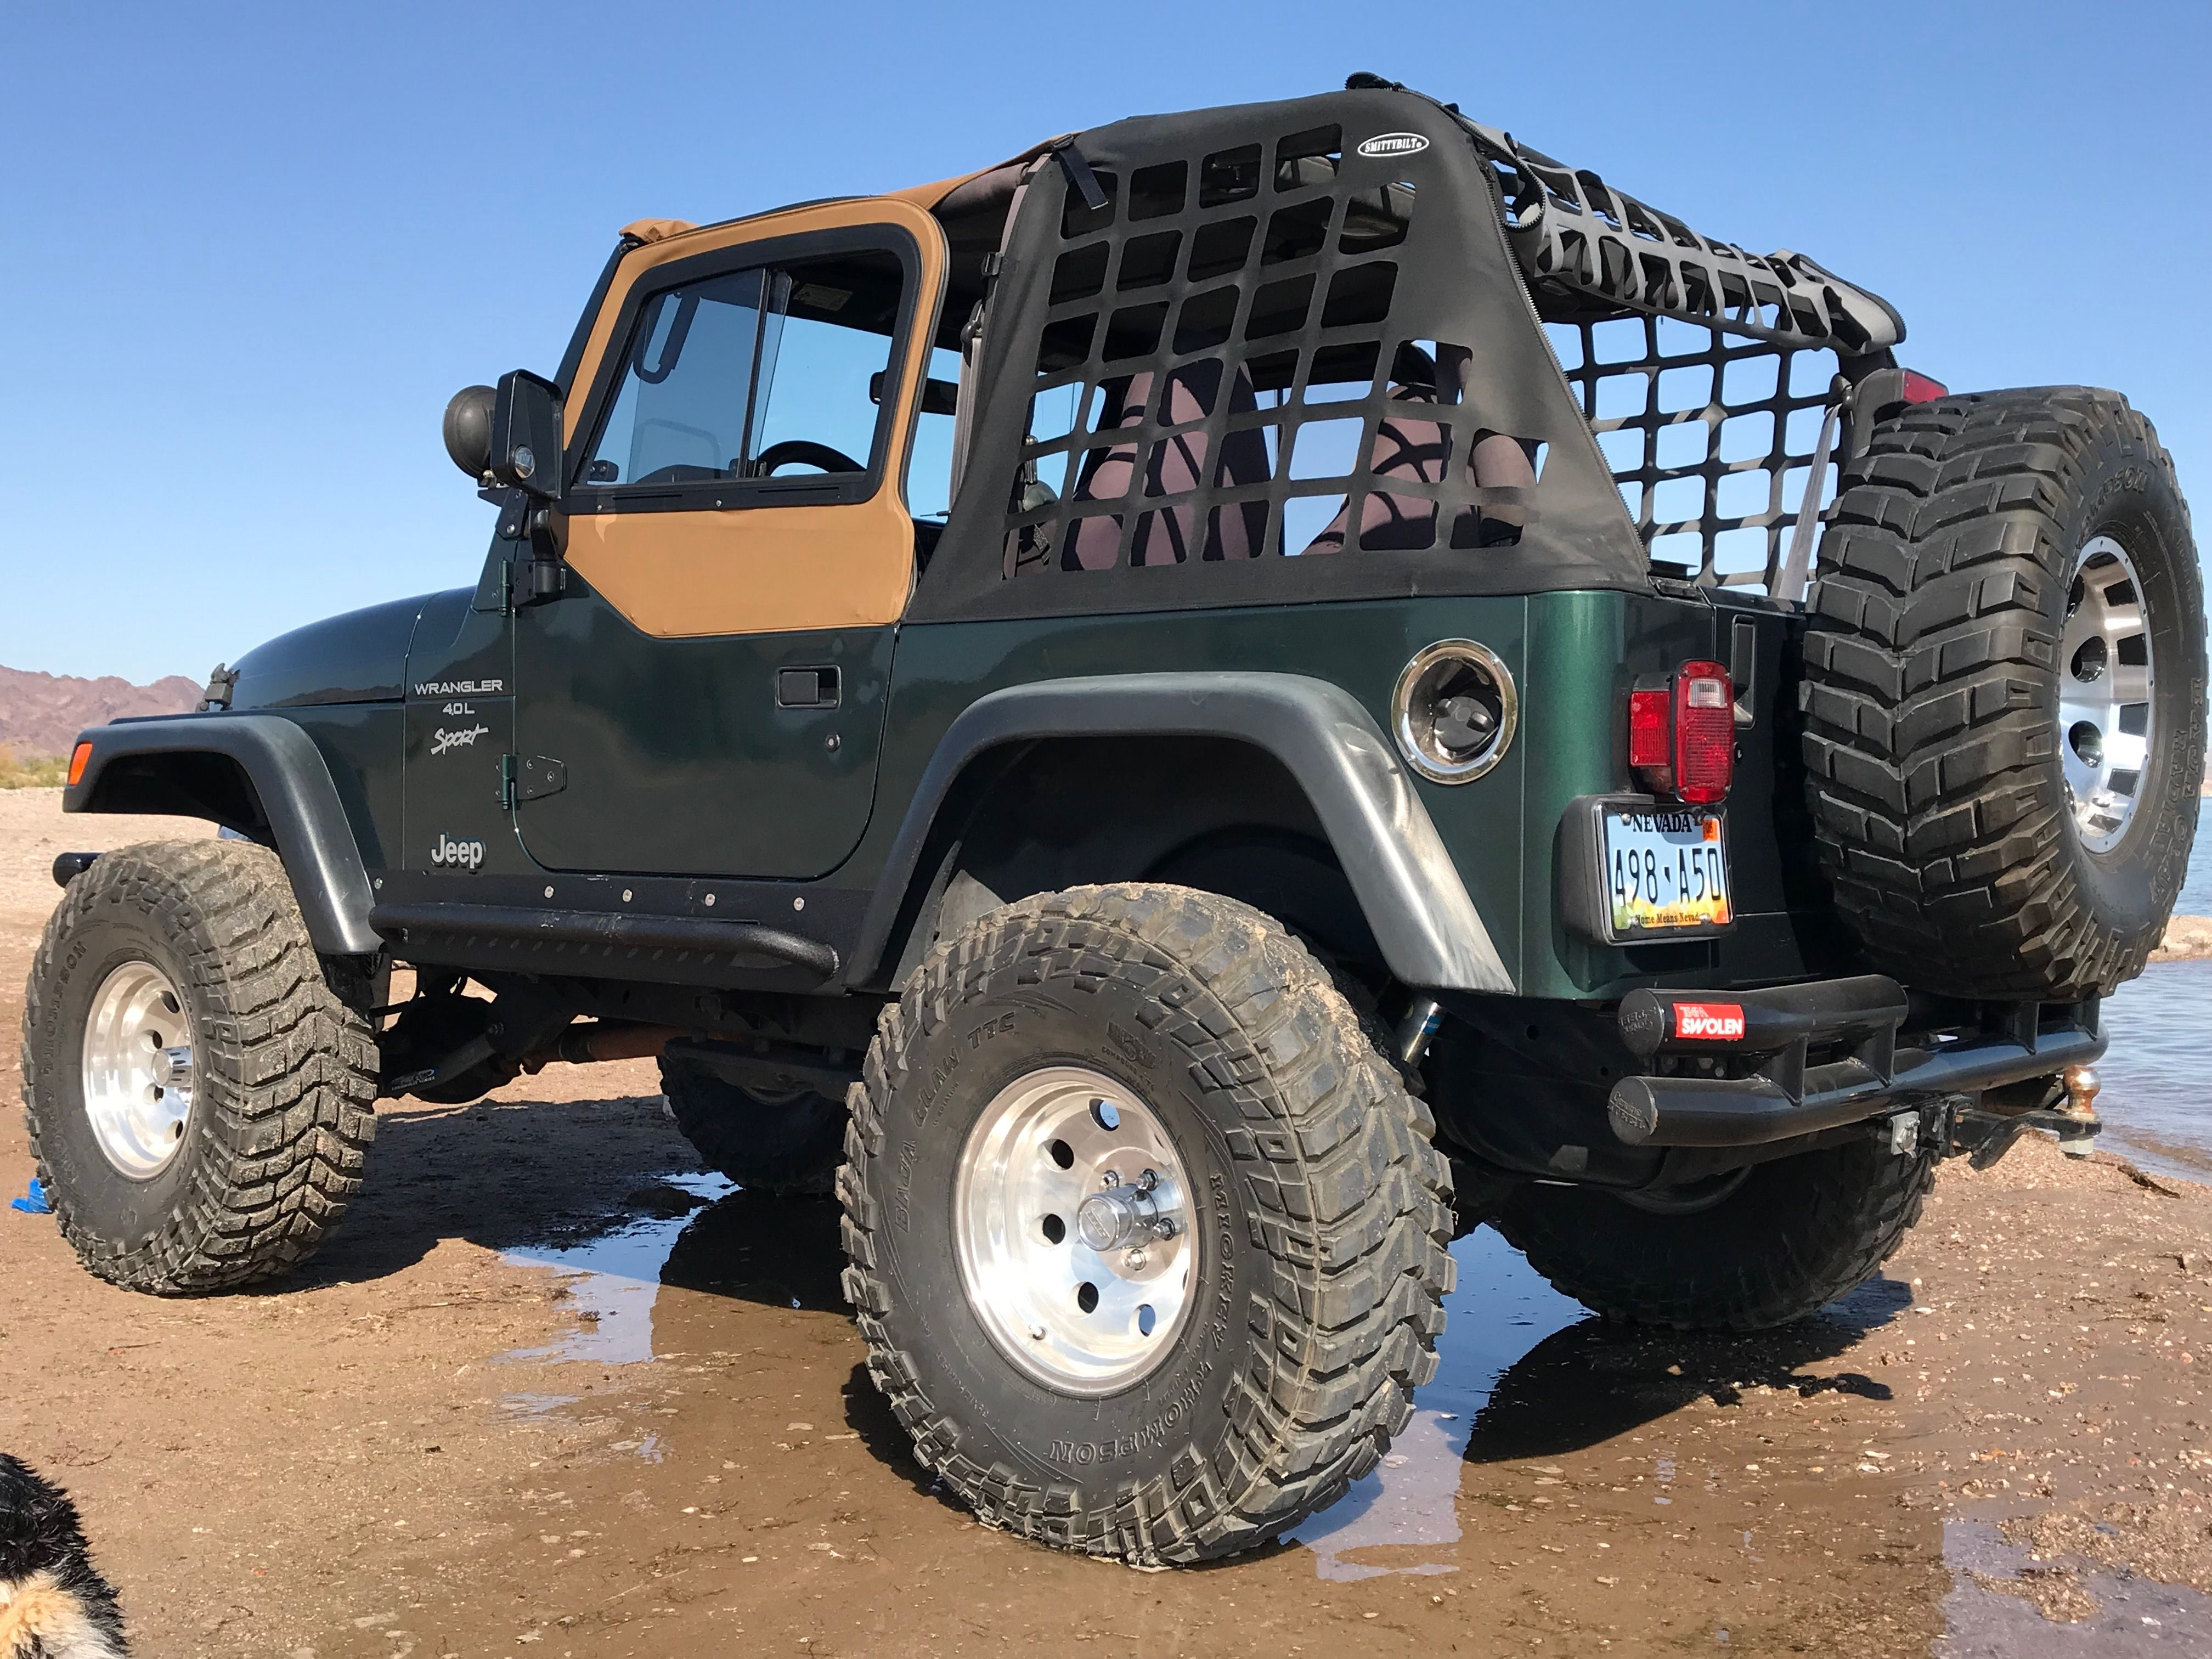 Pin By Benjamin Tugwell On O O Jeep Tj Jeep Truck Jeep